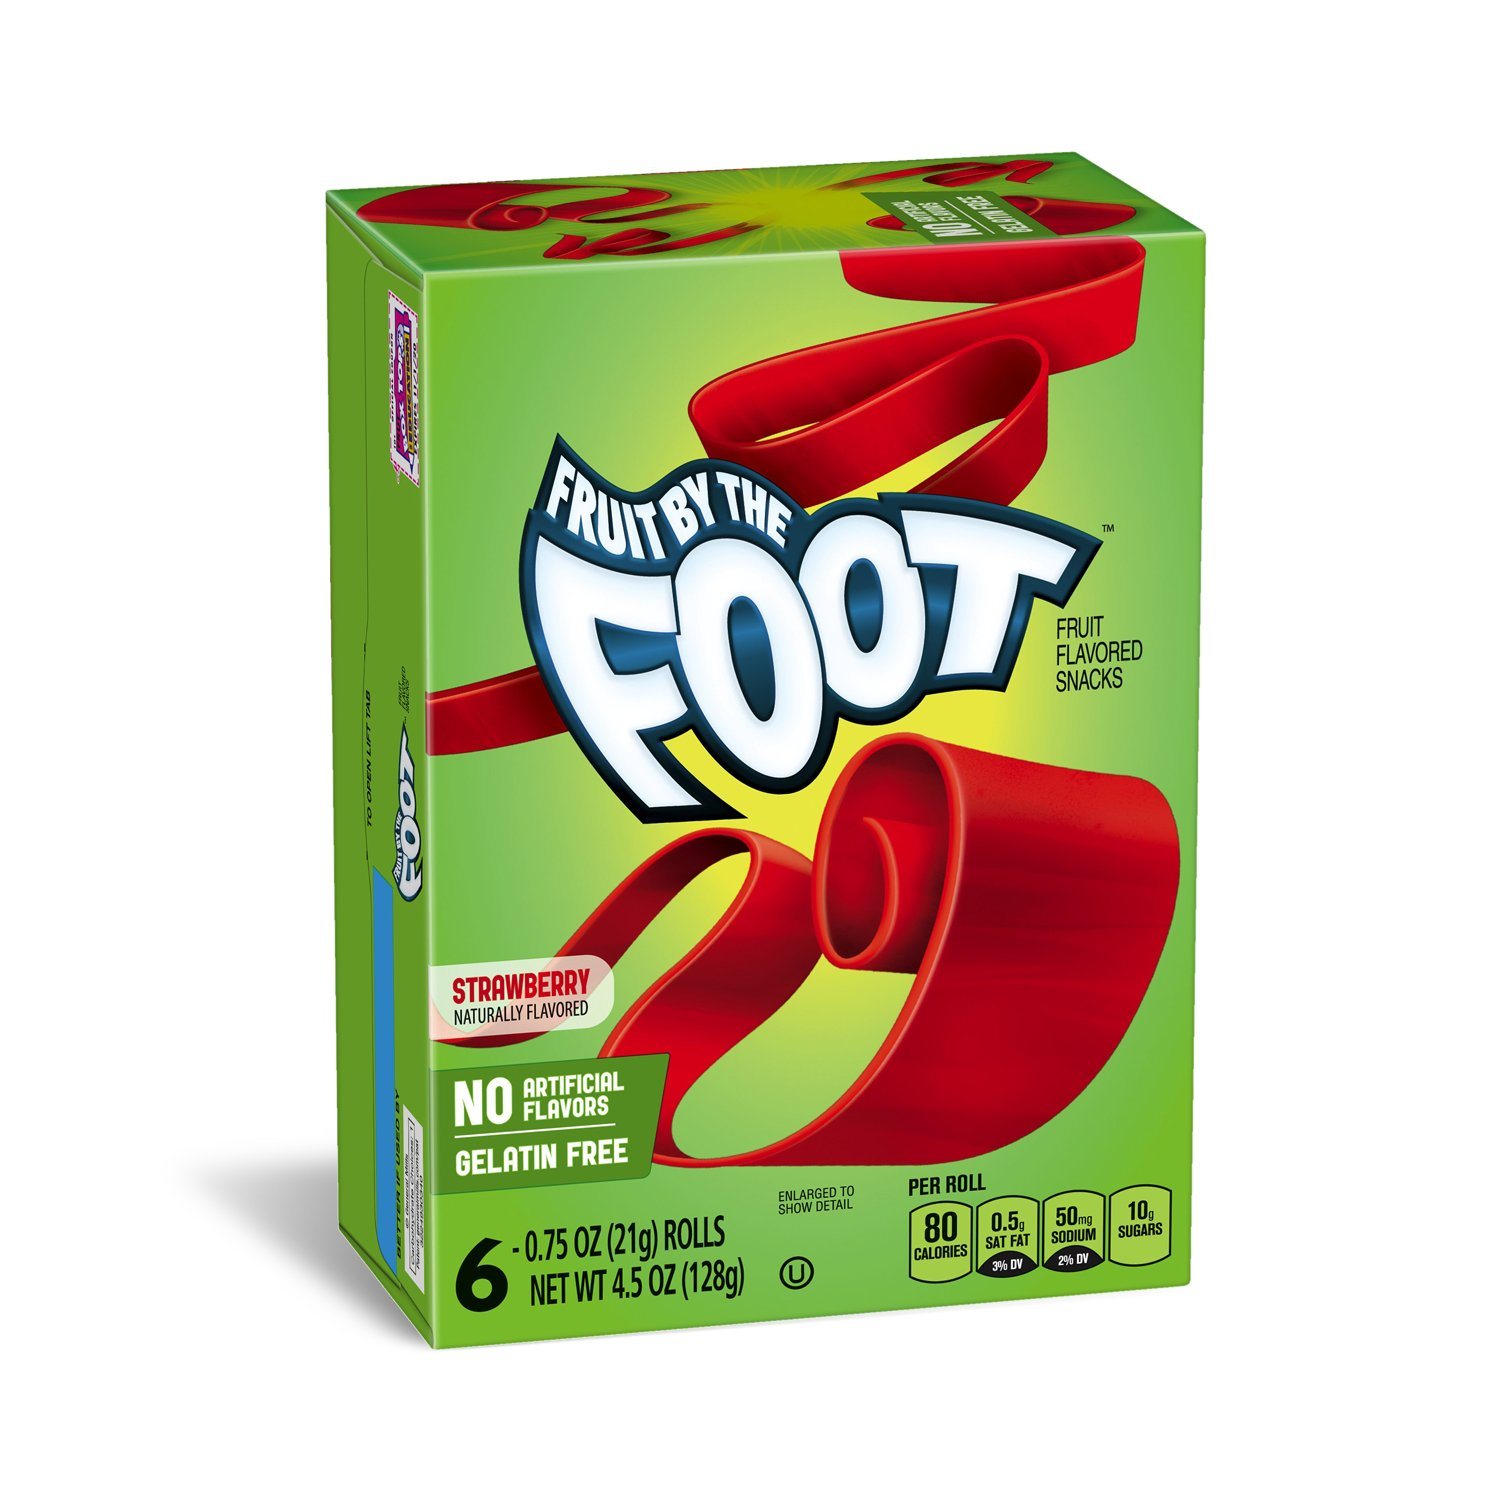 Image result for fruit by the foot